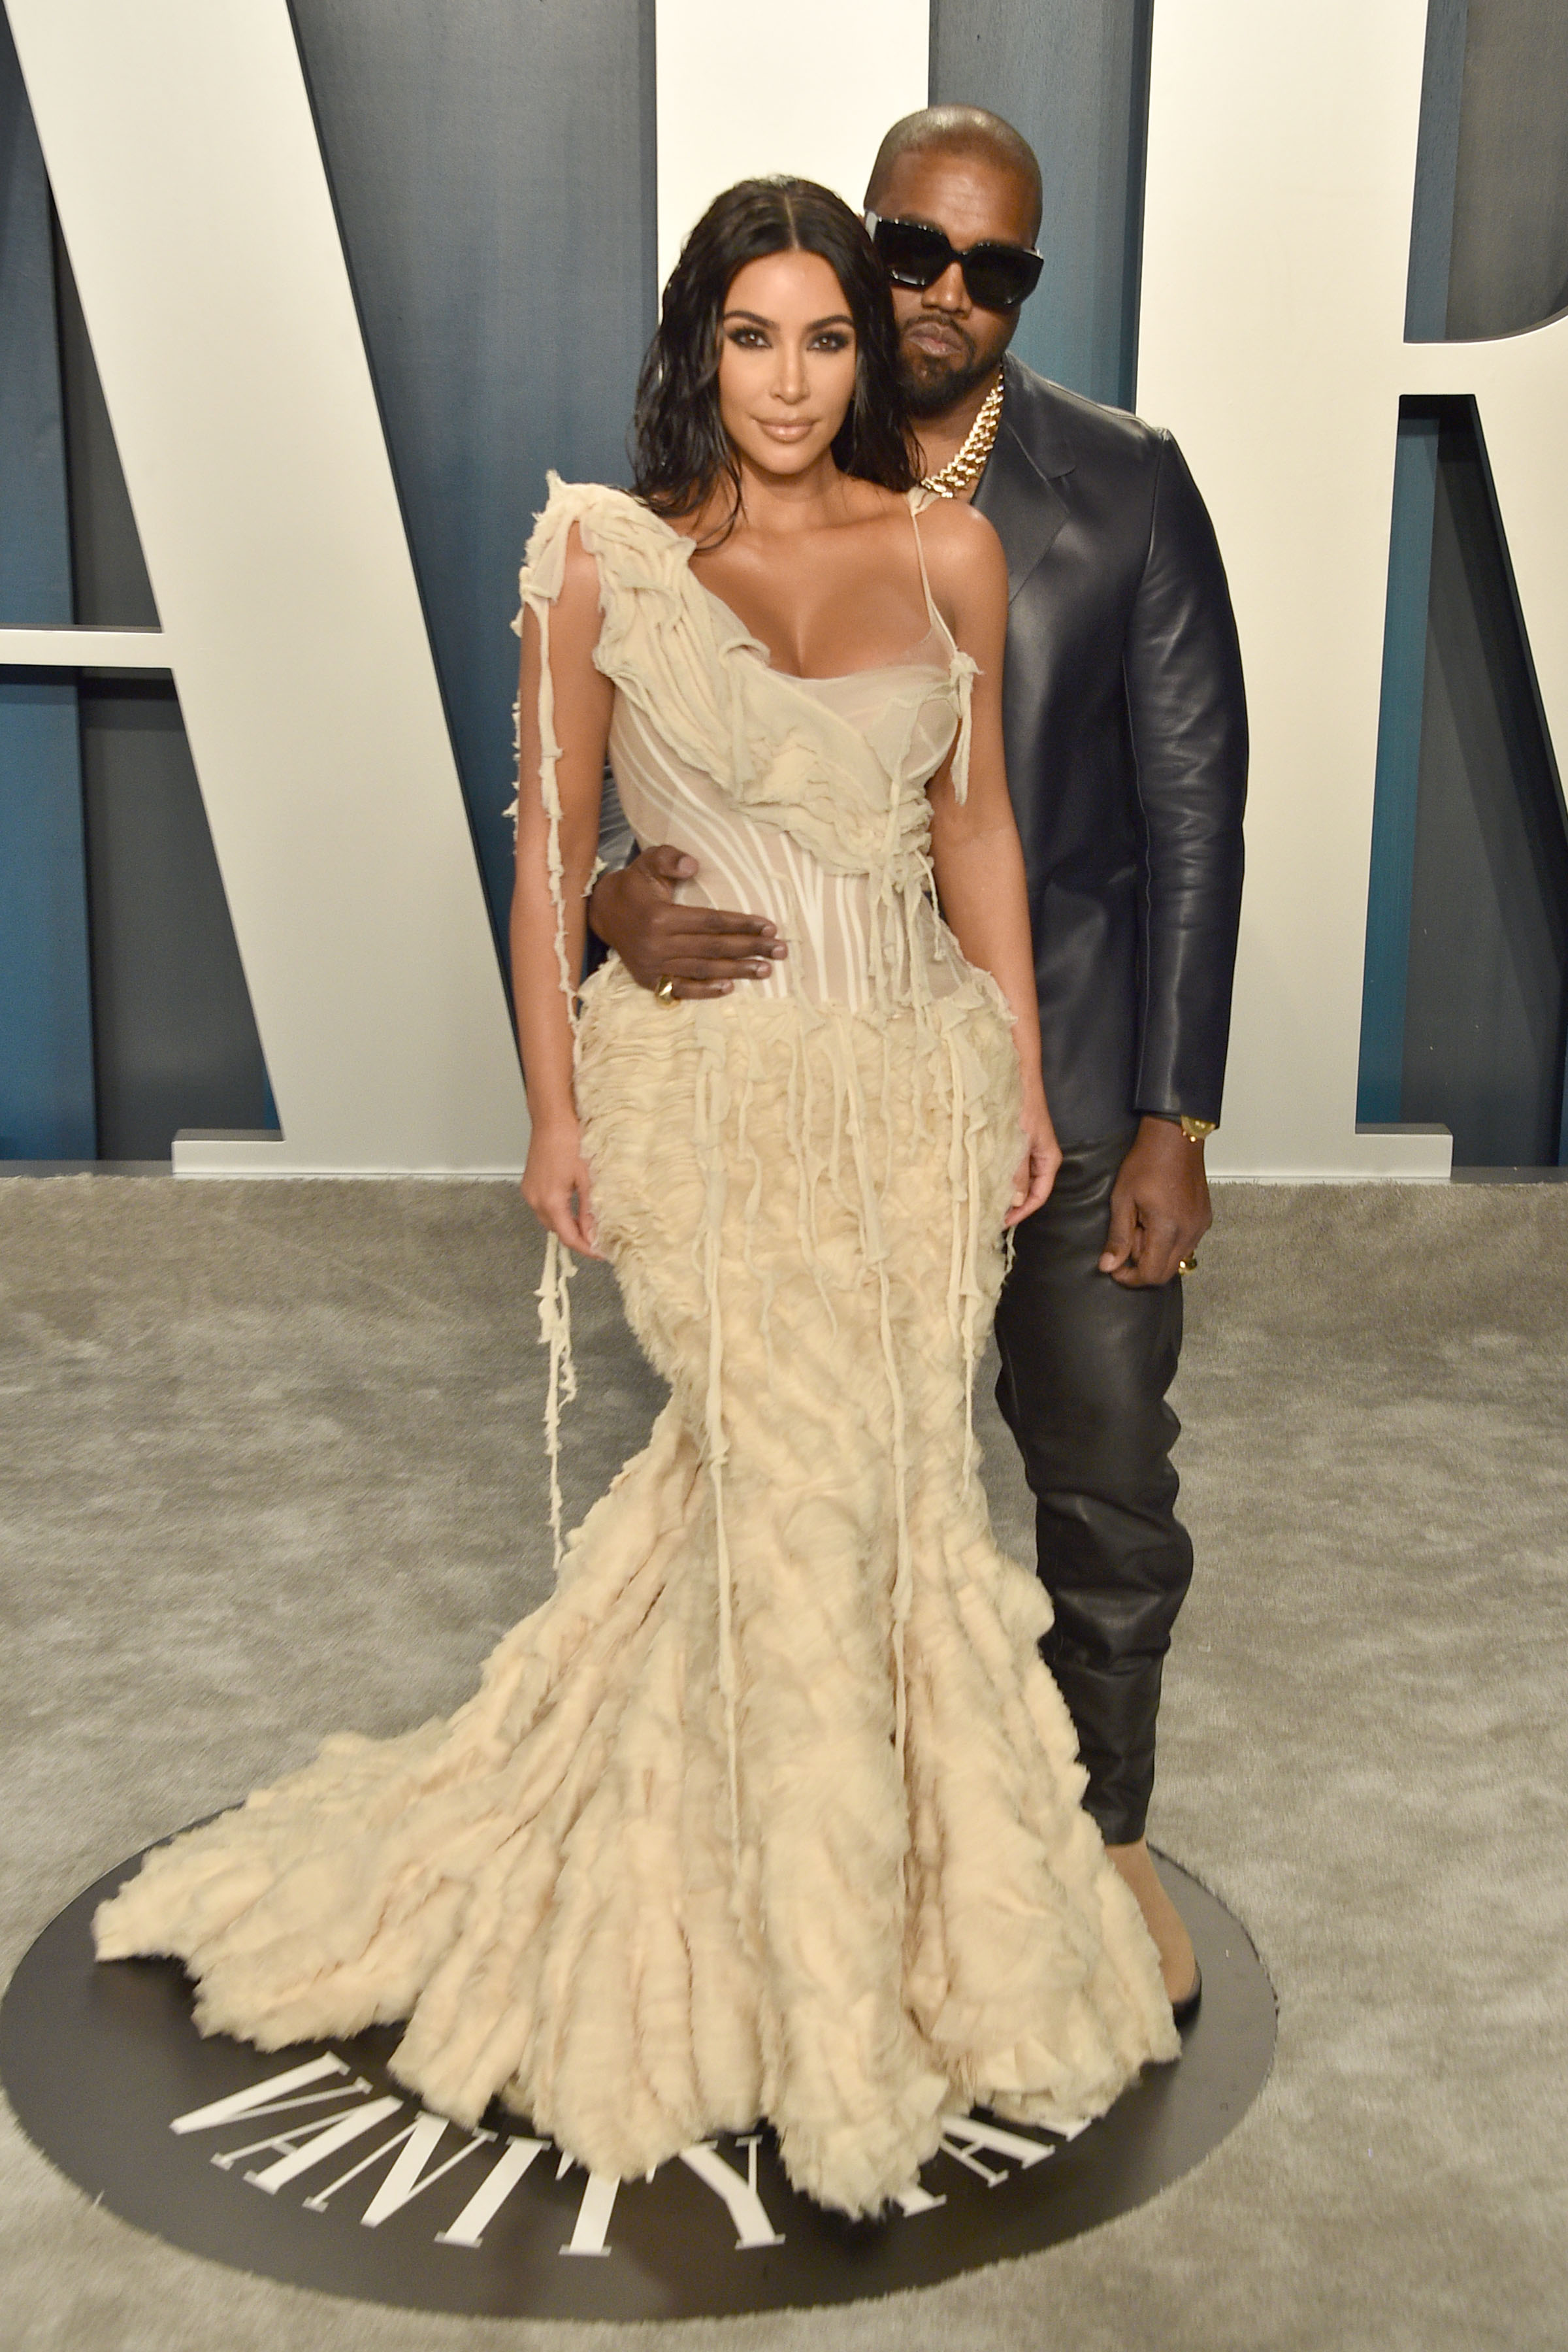 Kim Kardashian and Kanye West attend the 2020 Vanity Fair Oscar Party at Wallis Annenberg Center for the Performing Arts on February 09, 2020 in Beverly Hills, California. (Photo by David Crotty/Patrick McMullan via Getty Images)